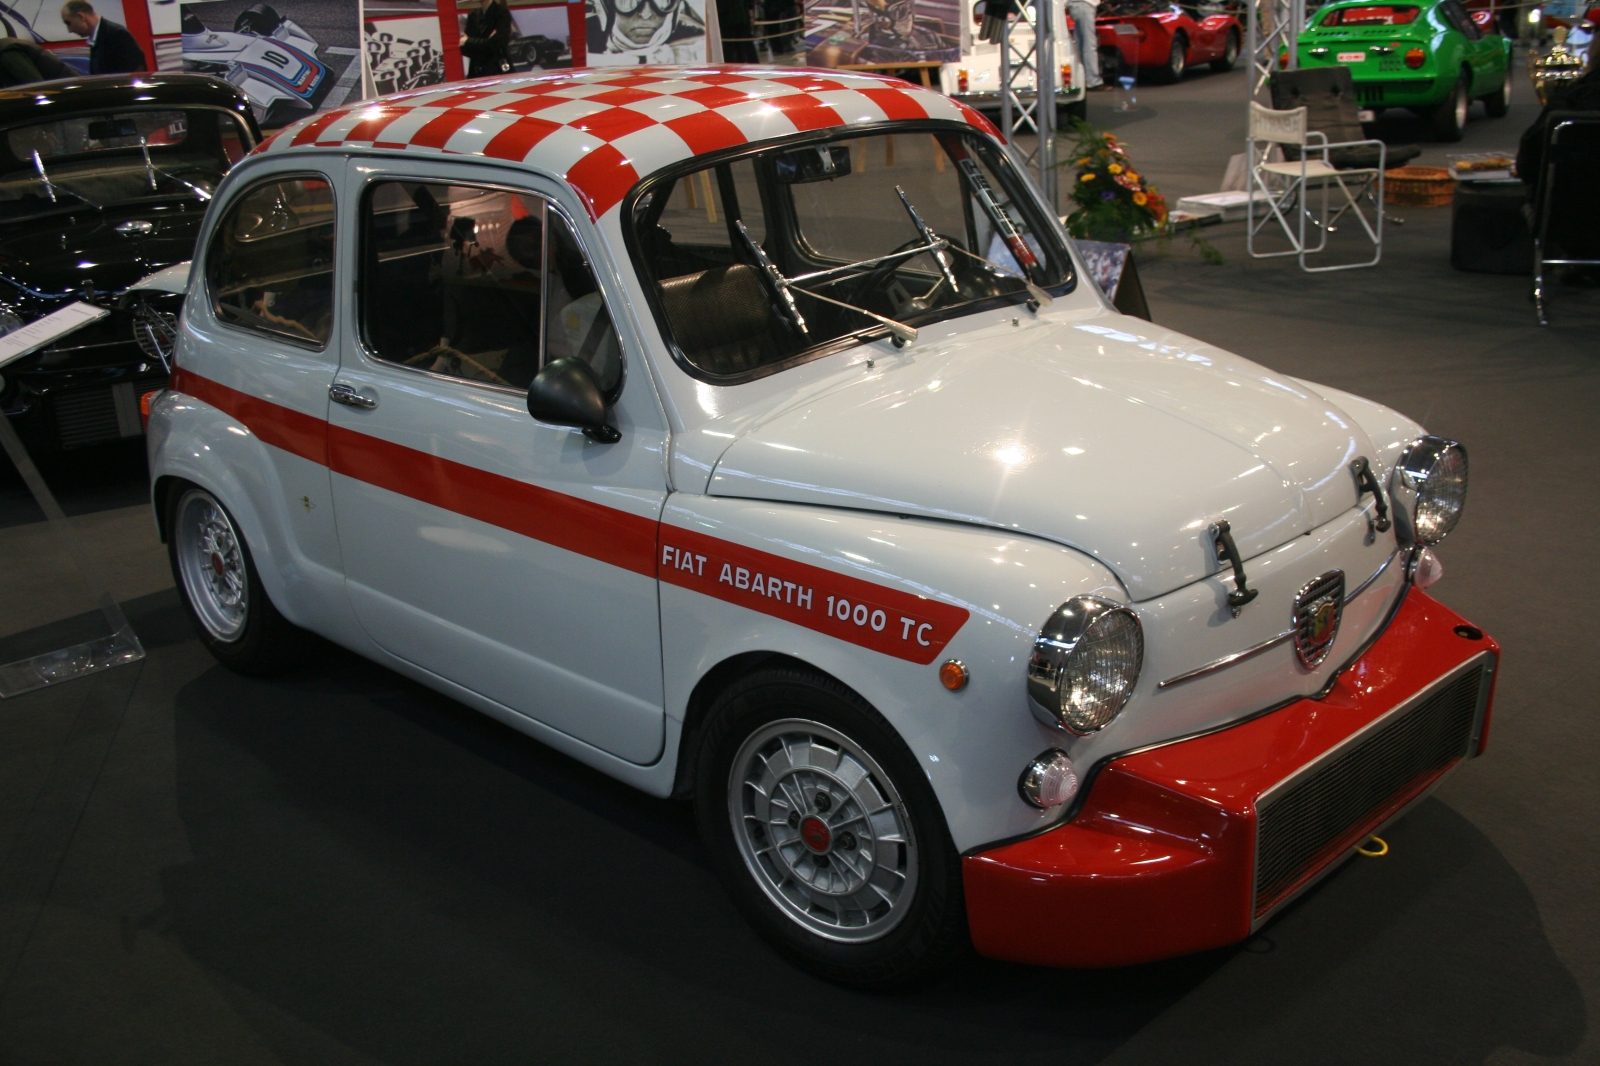 Abarth Fiat 1000 TC Berlina Corsa